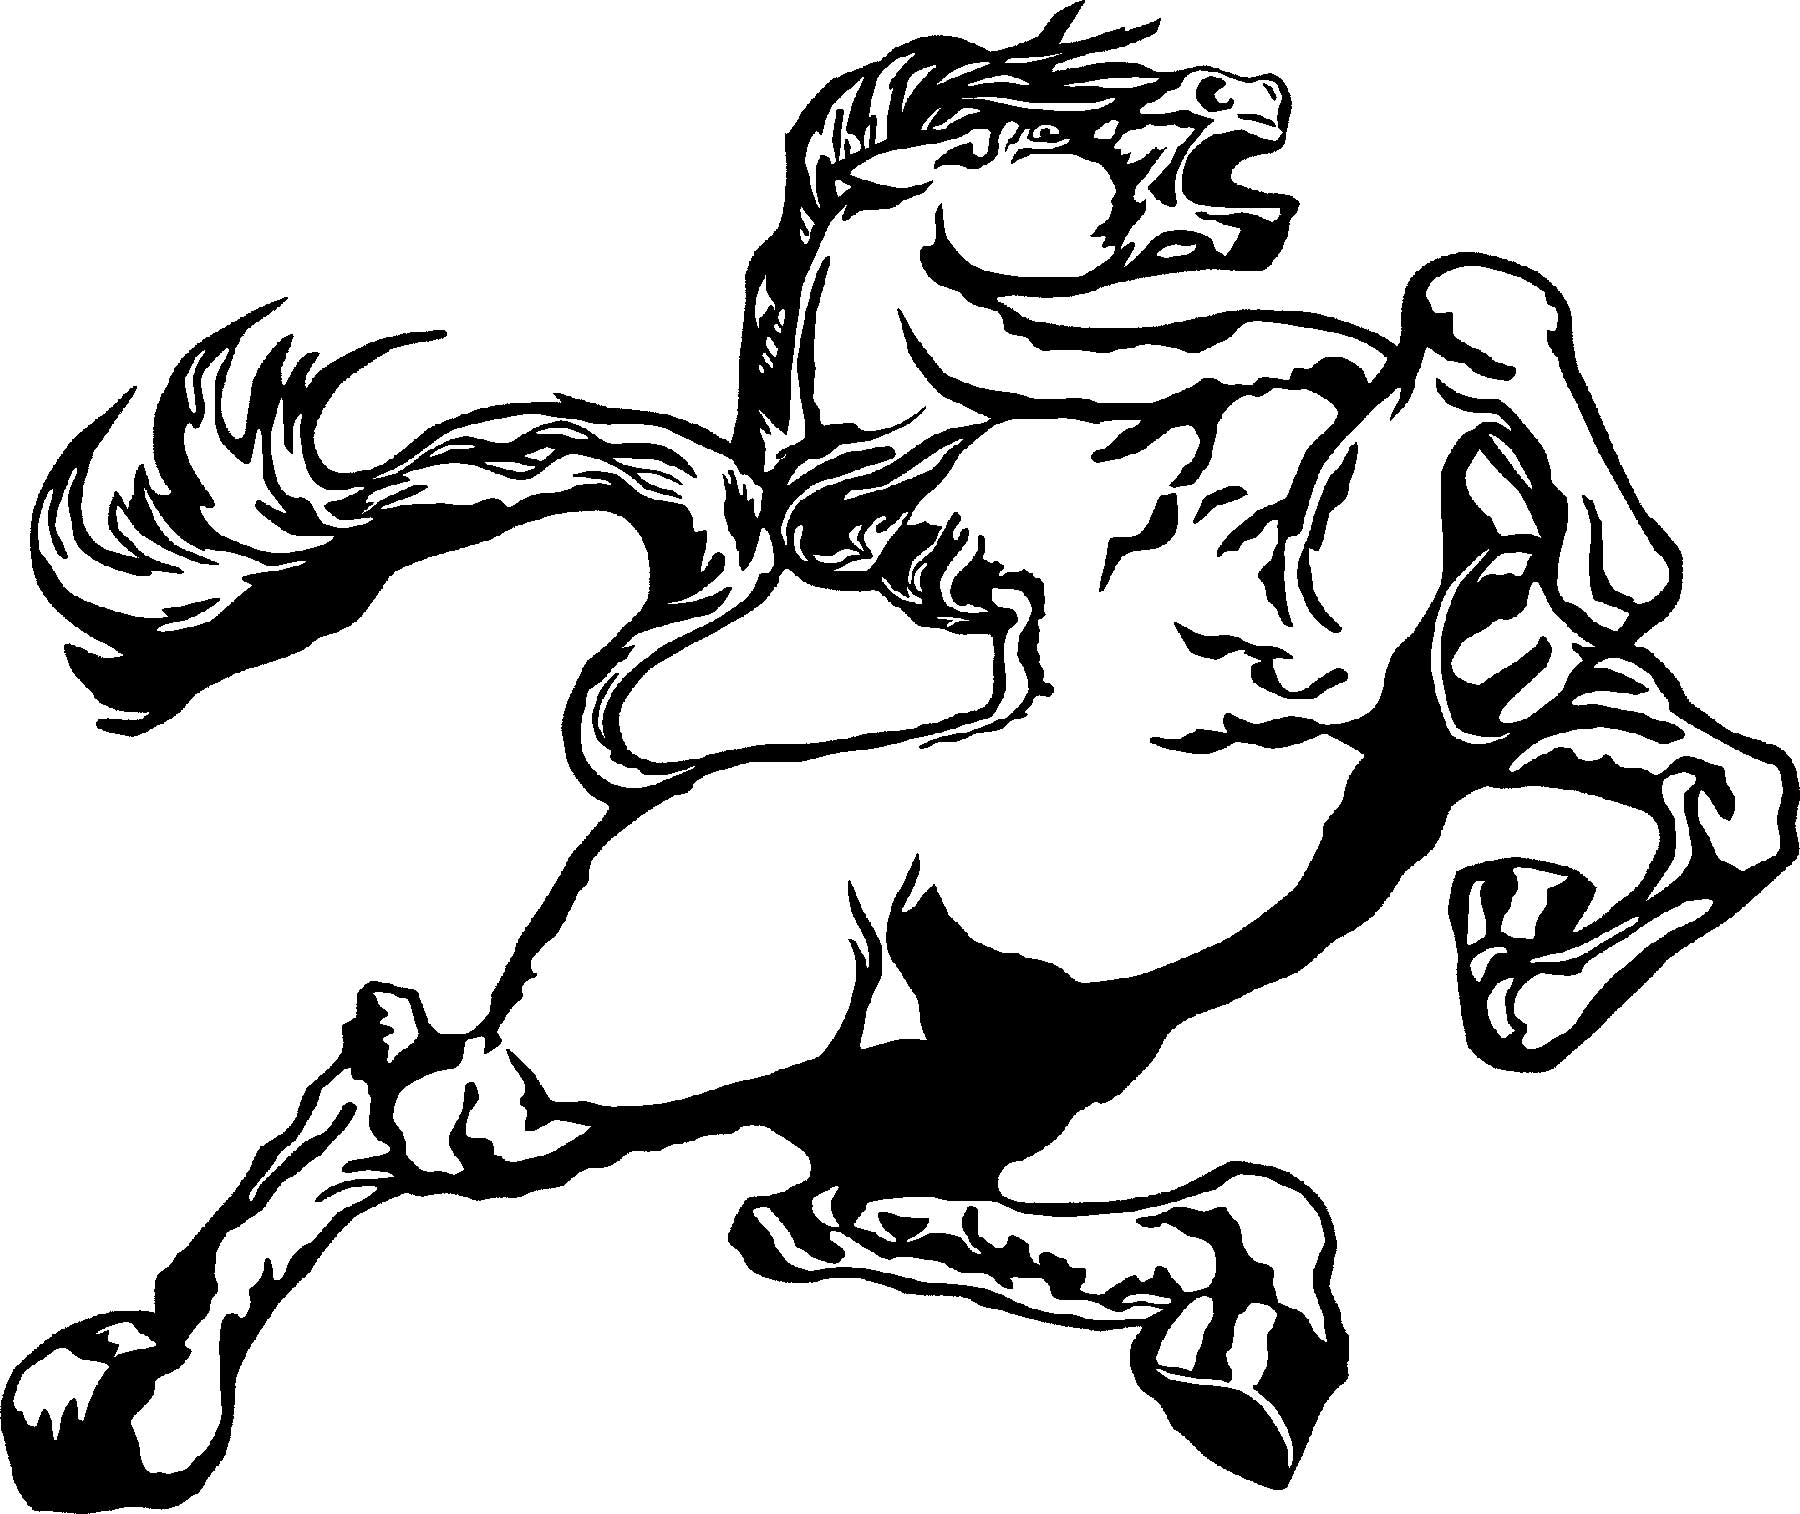 mustang drawing outline mustang logo drawing easy jumping horse outline outline drawing mustang